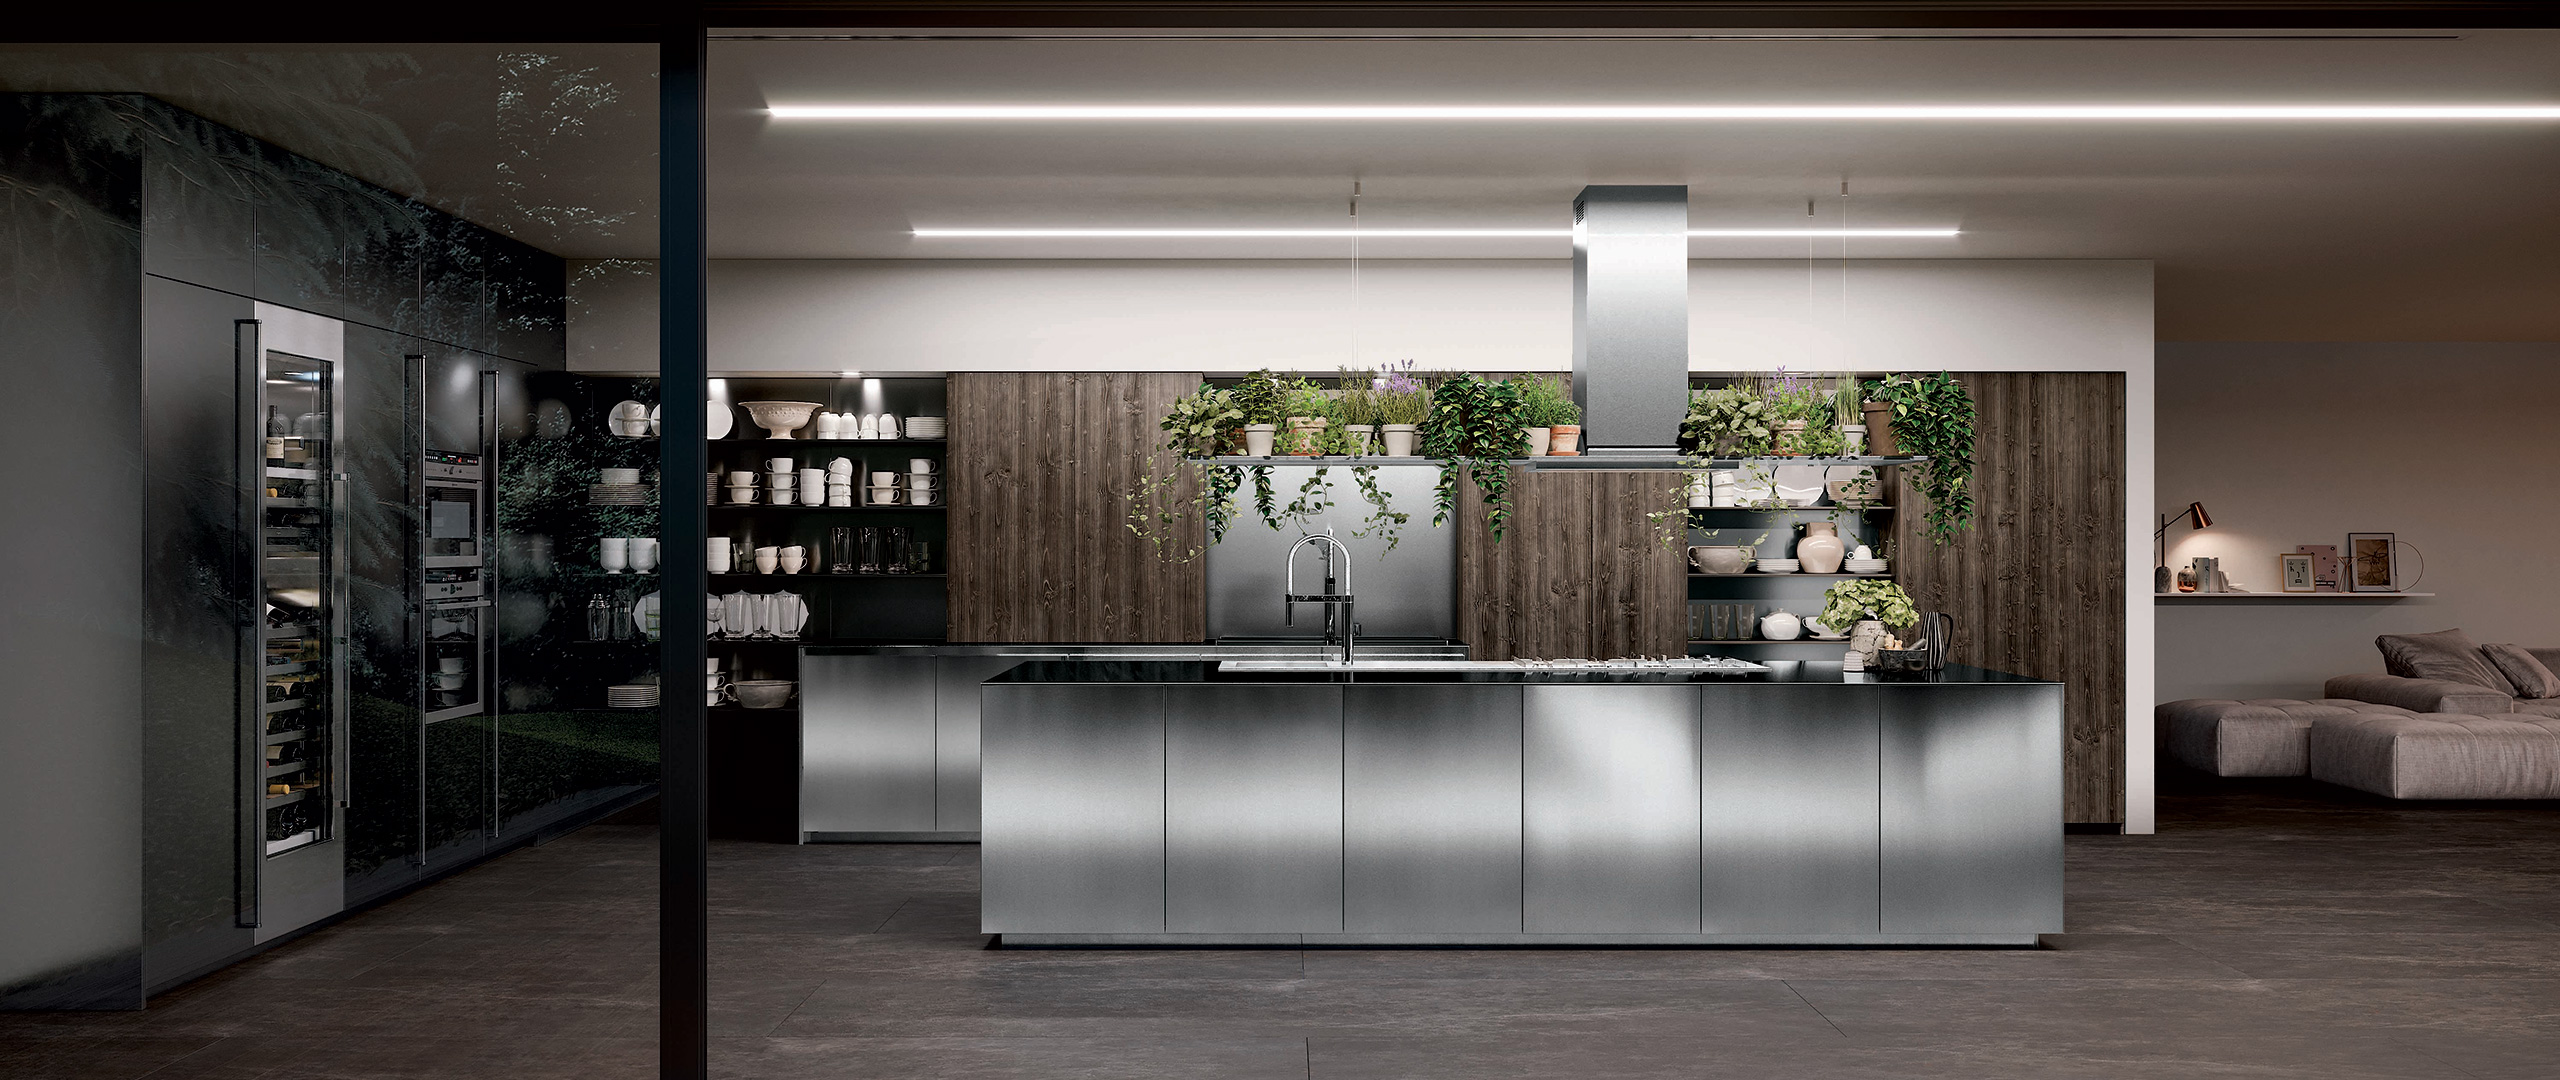 Design kitchens and furnishings Made in Italy - Novacucina